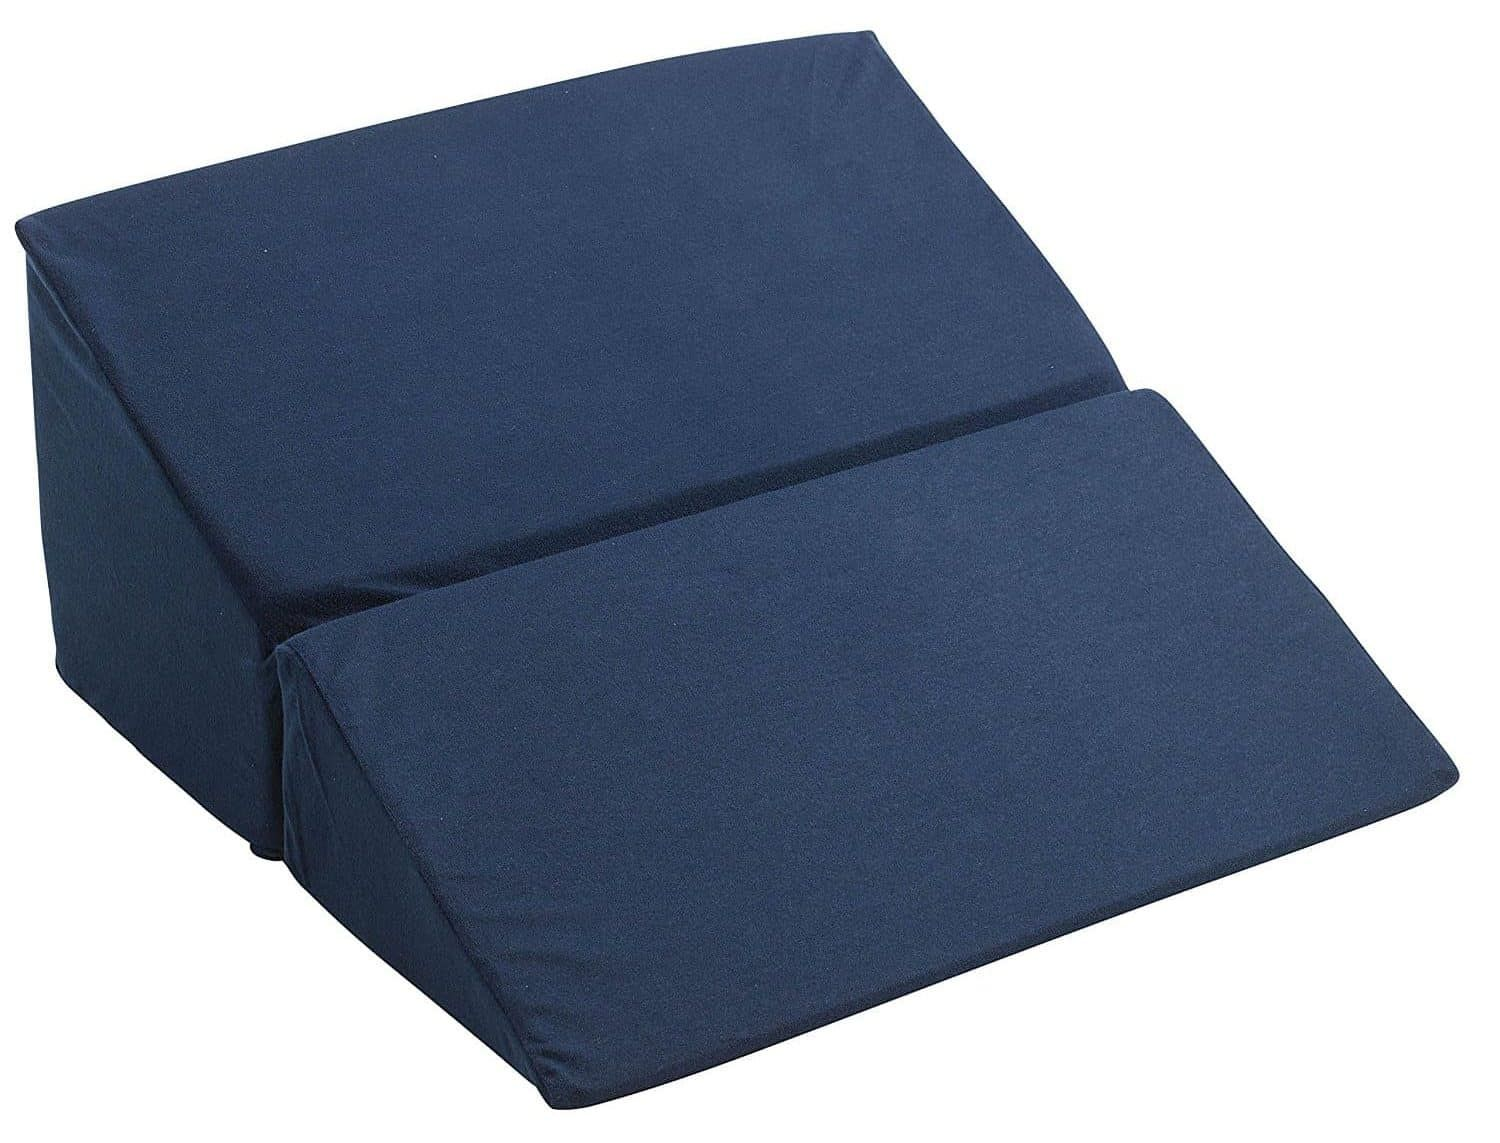 Top 10 Best Bed Wedge Pillows in 2020 Folding beds, Bed